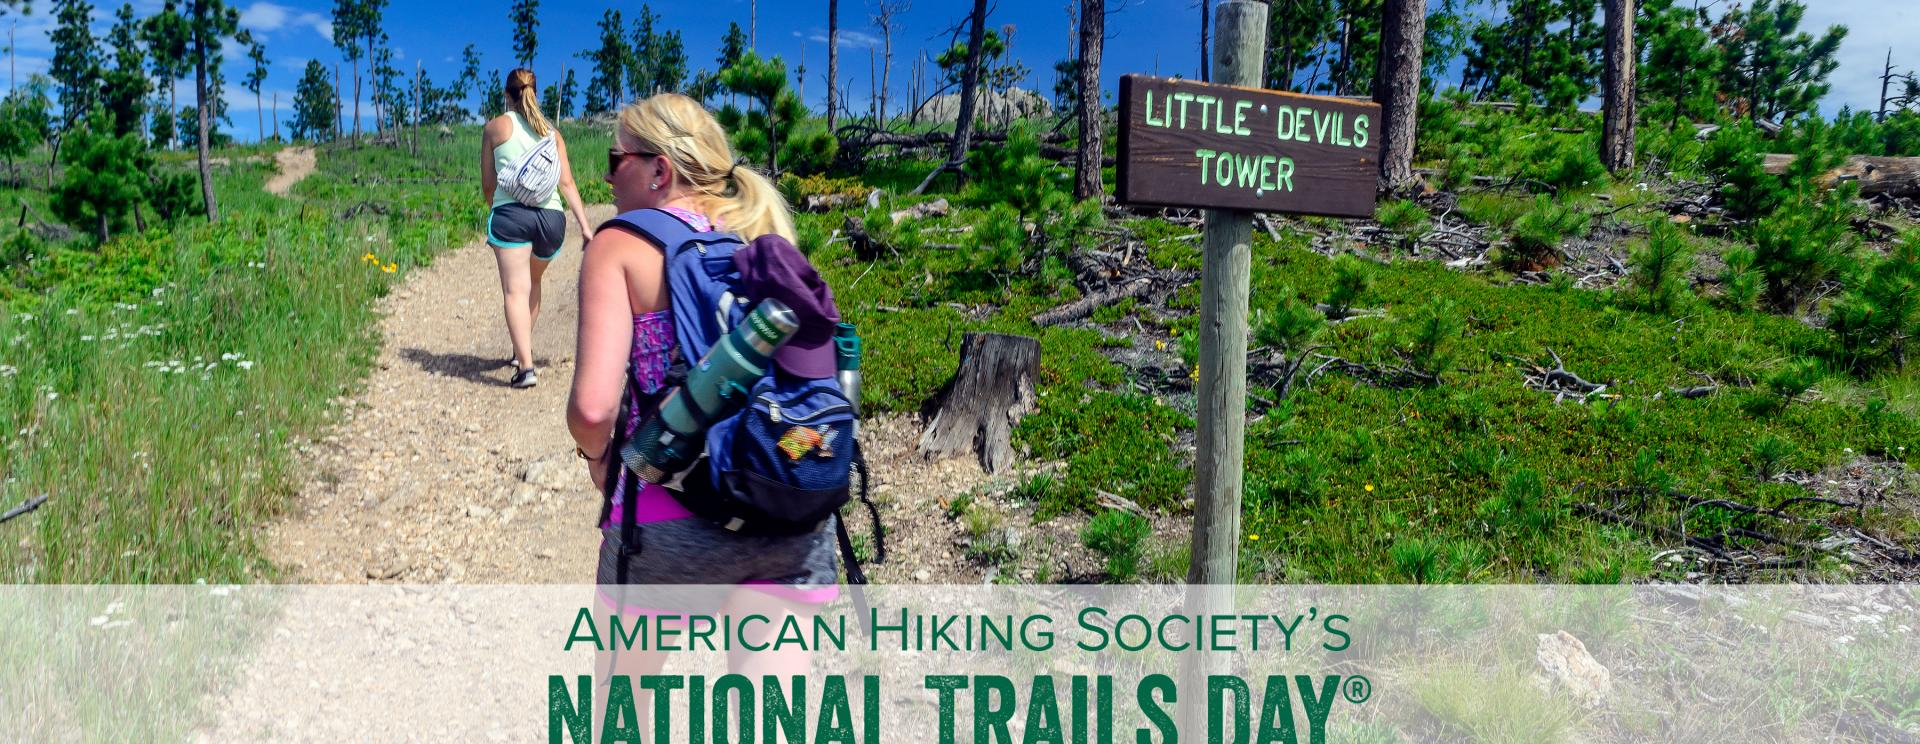 Find Your Trail on National Trails Day 2018